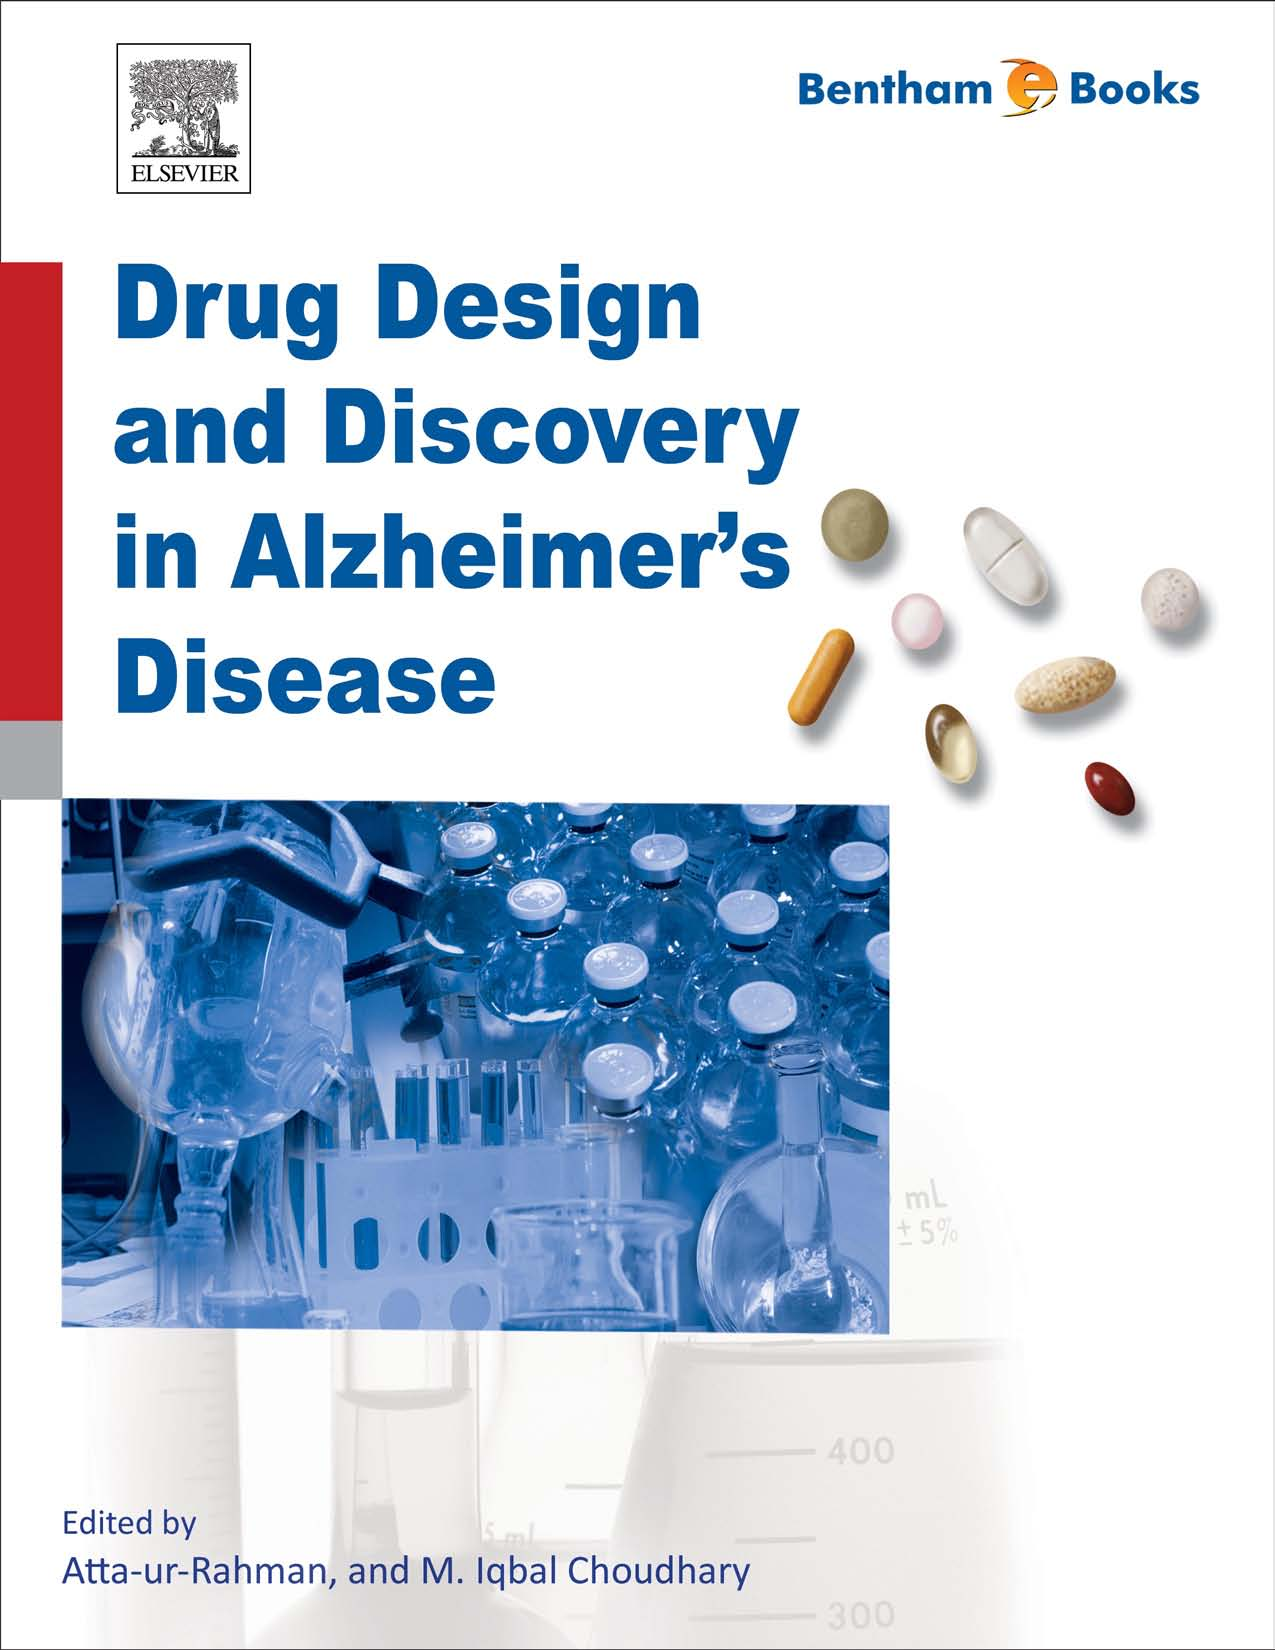 Drug Design and Discovery in Alzheimer's Disease